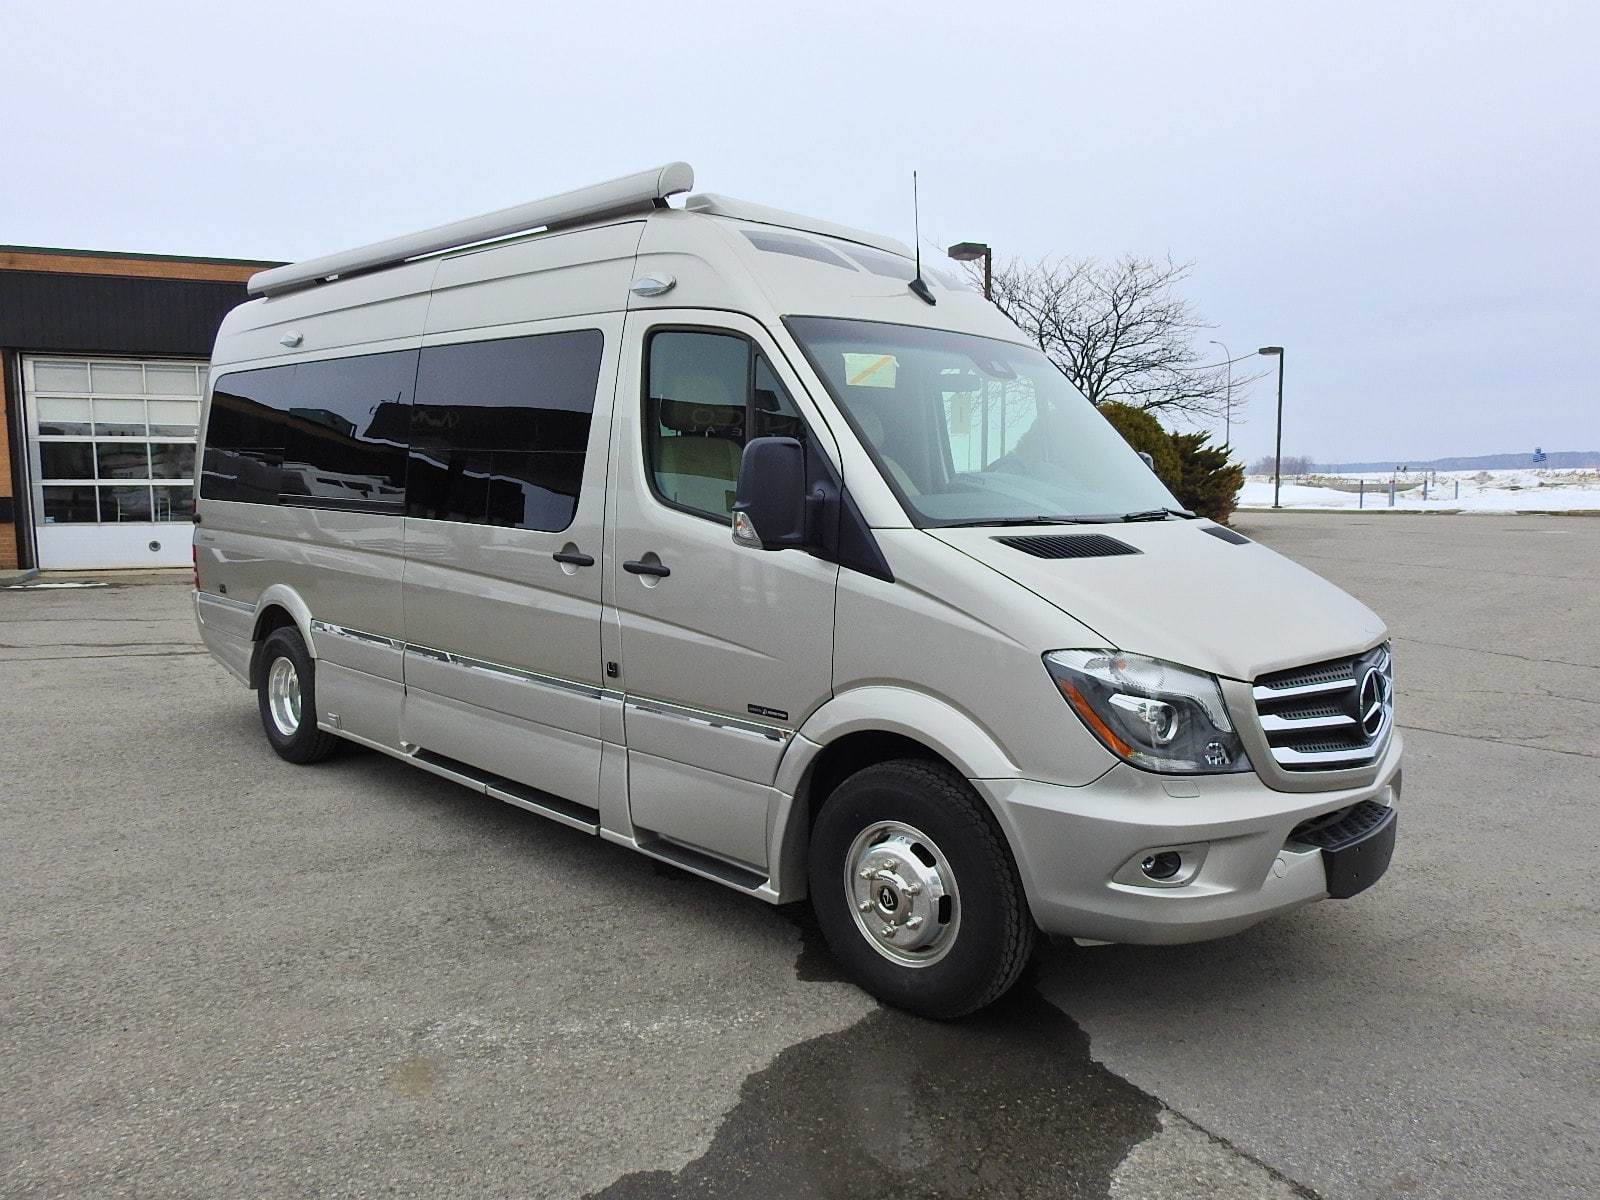 Surprising New Used Class B Motorhome Camper Van For Sale In Canada Home Interior And Landscaping Ponolsignezvosmurscom